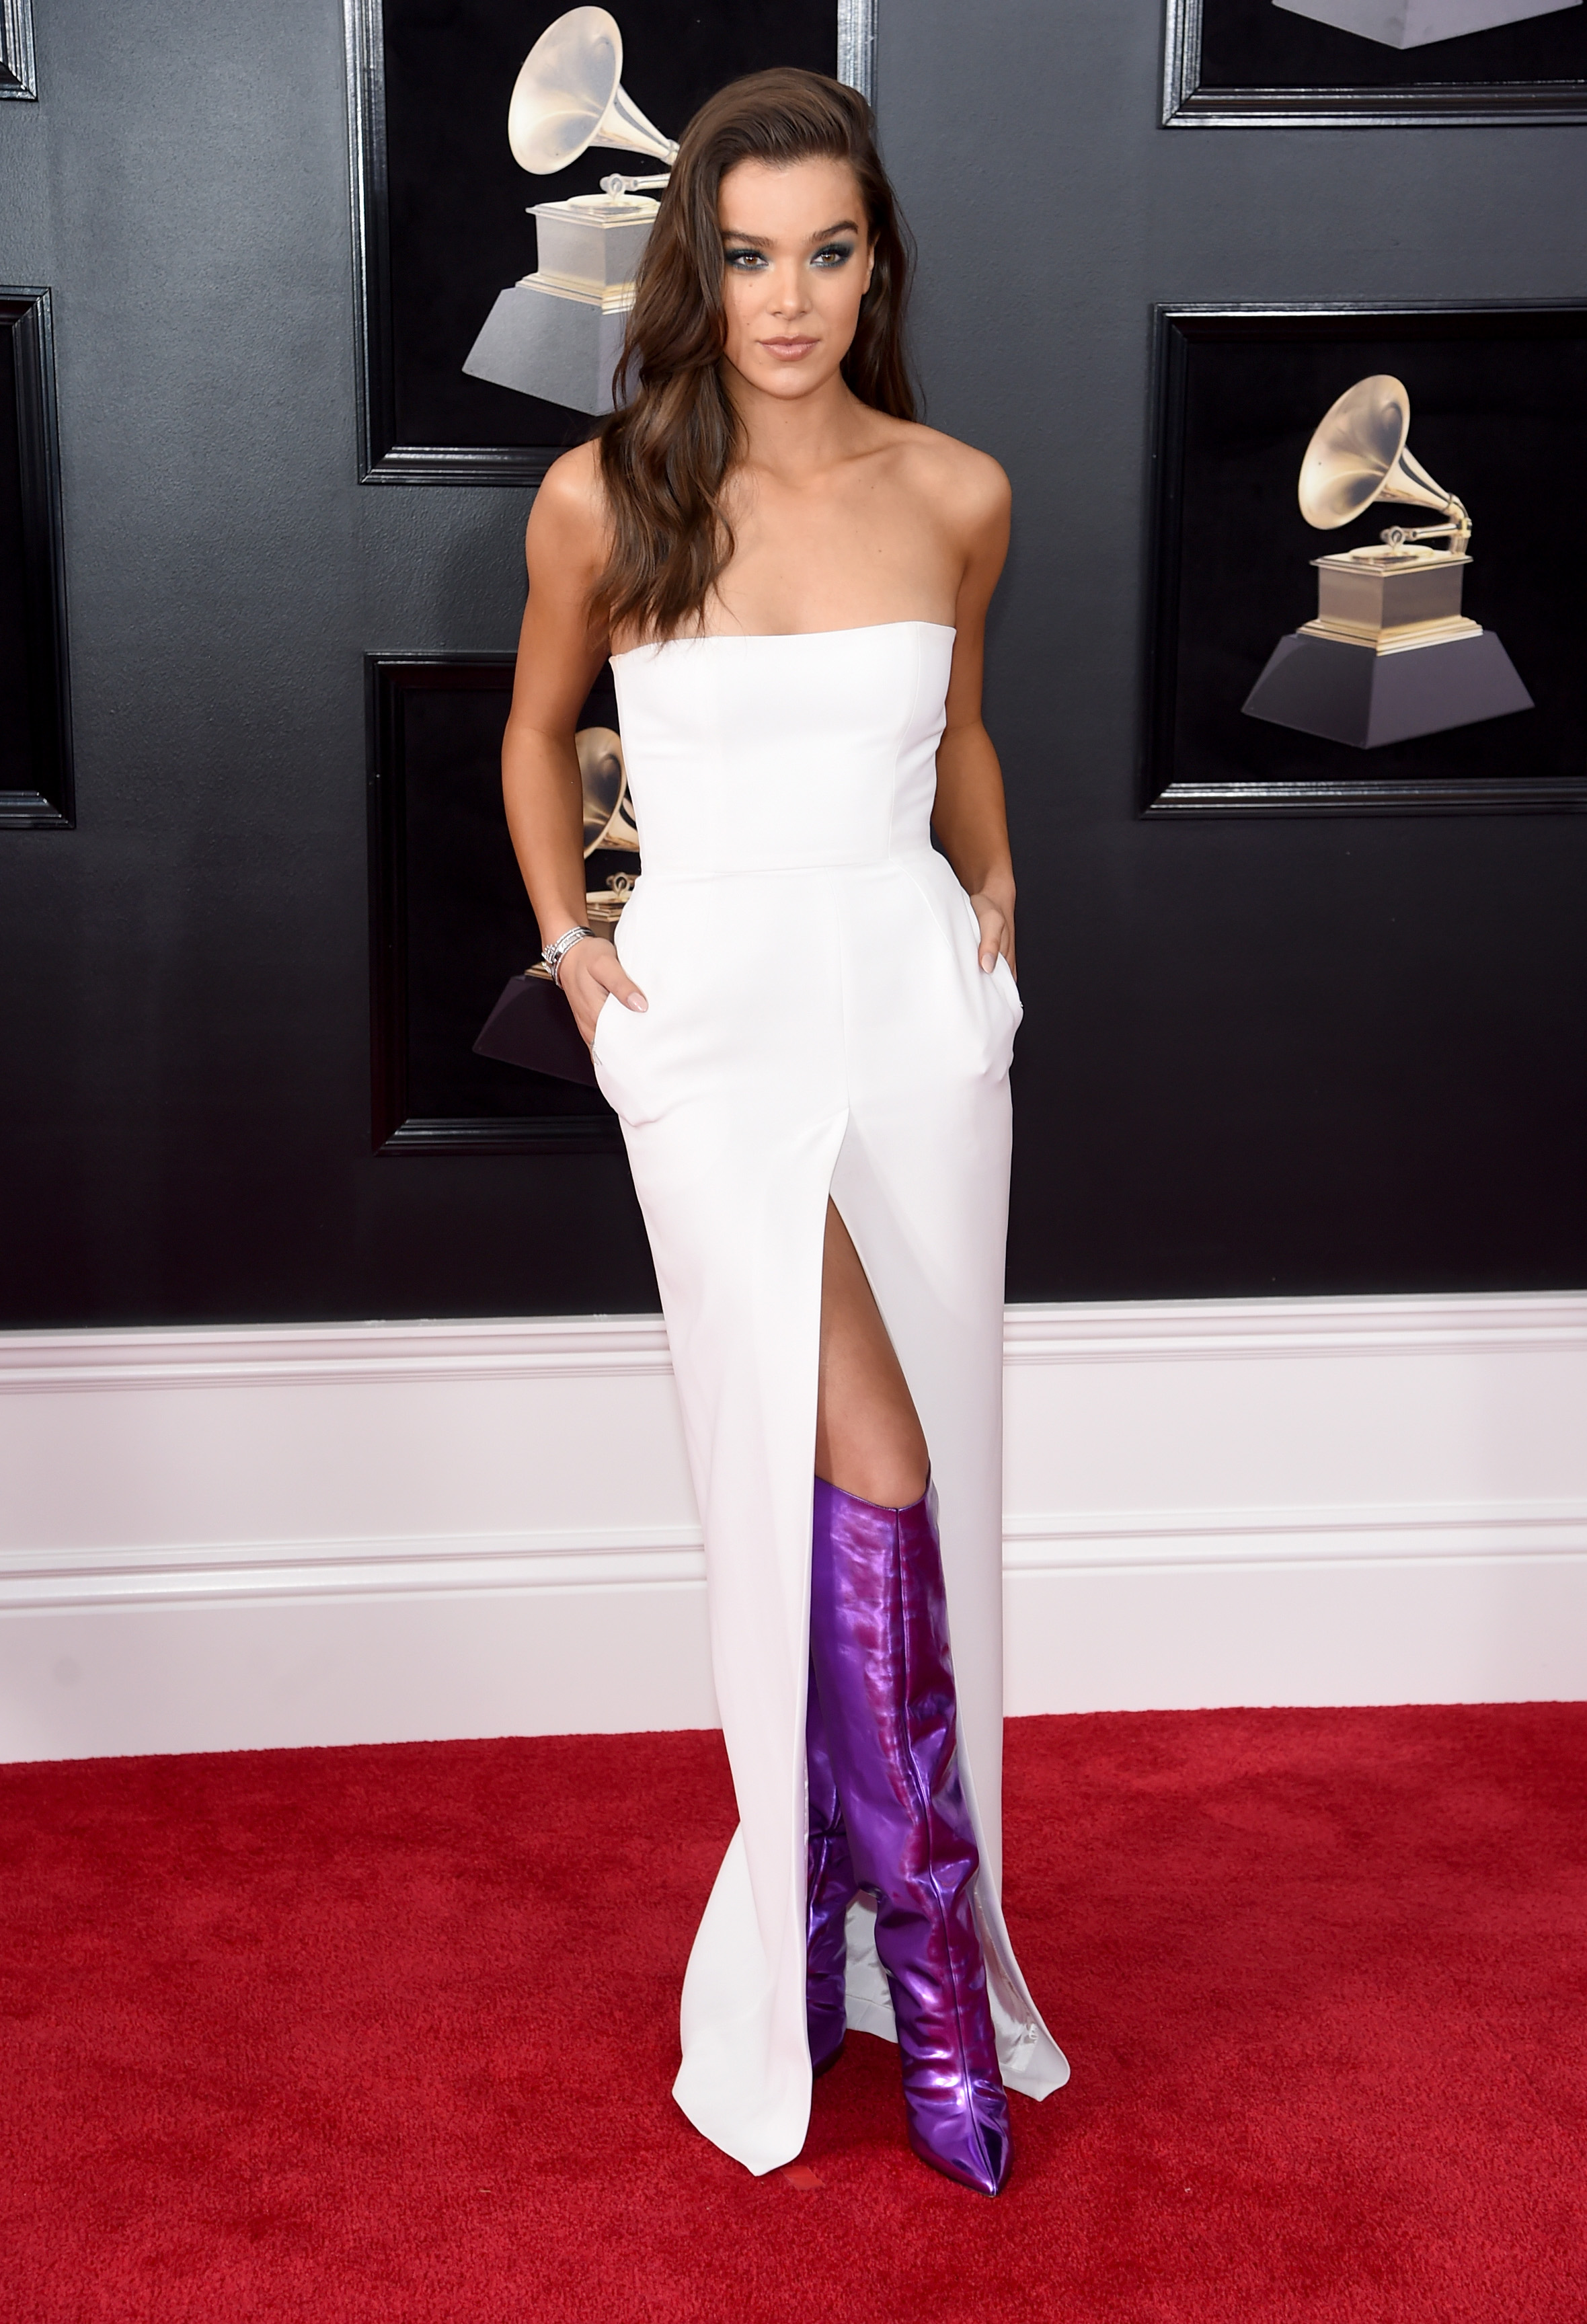 NEW YORK, NY - JANUARY 28:  Recording artist-actor Hailee Steinfeld attends the 60th Annual GRAMMY Awards at Madison Square Garden on January 28, 2018 in New York City.  (Photo by Jamie McCarthy/Getty Images)